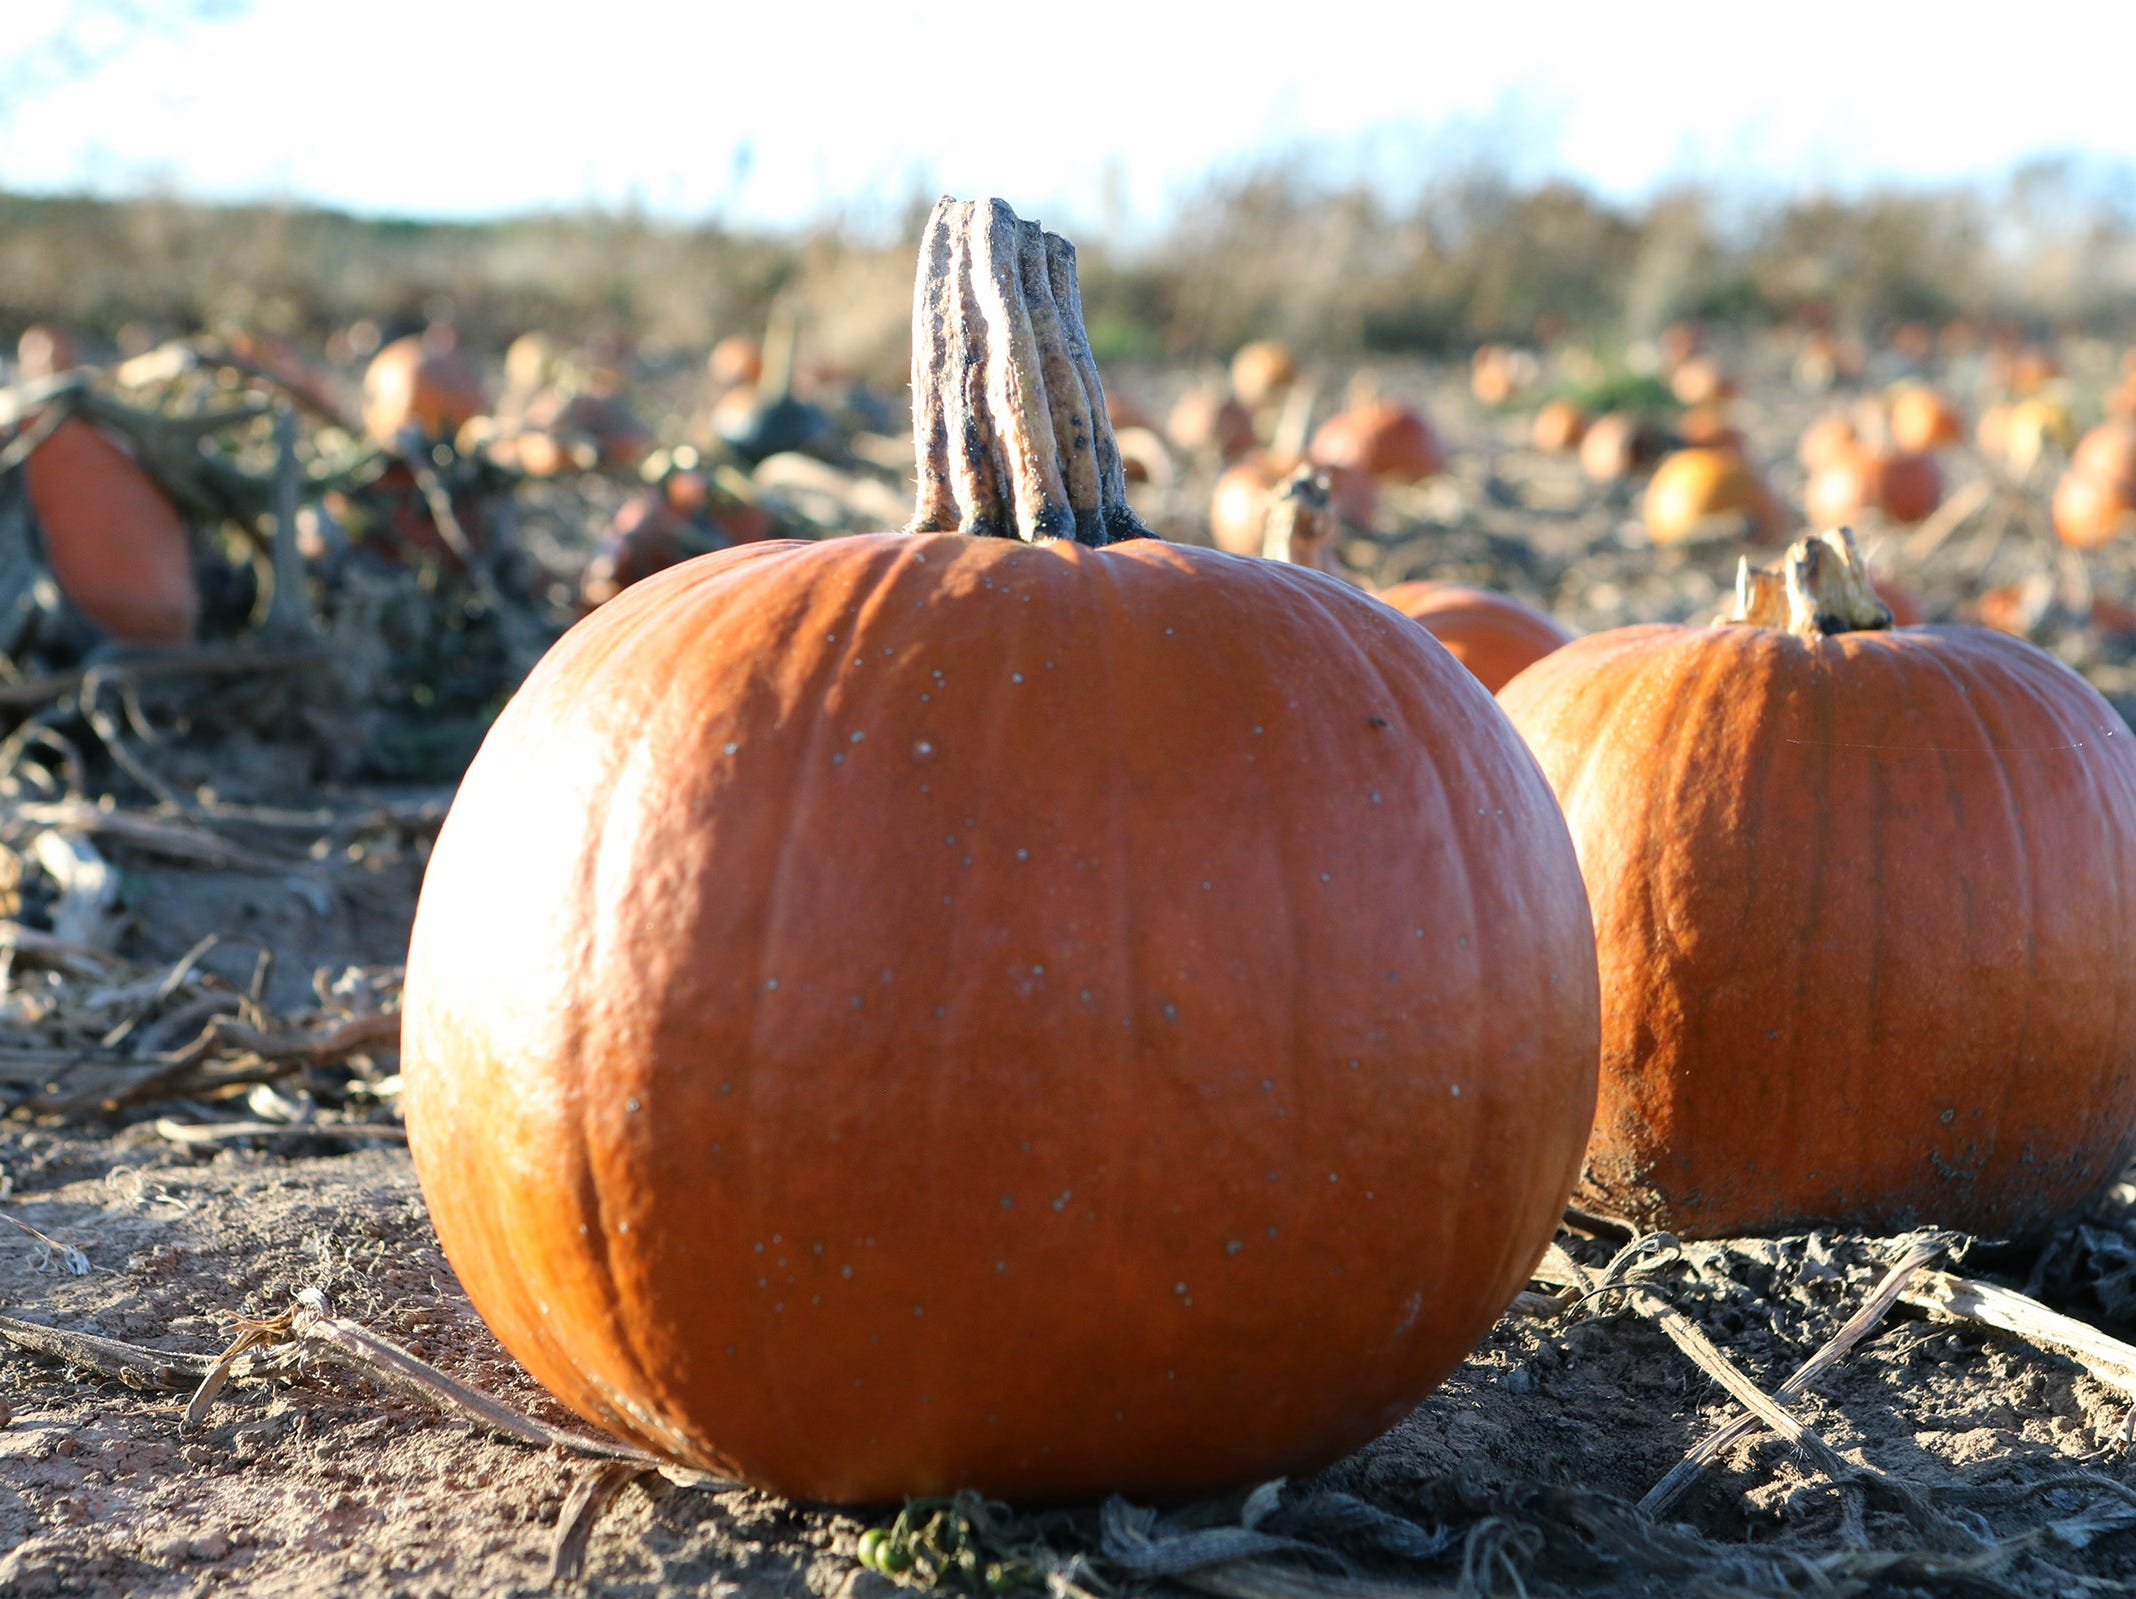 Pumpkins waiting for picking dot a field at Schuett Farms in Mukwonago on Oct. 22.